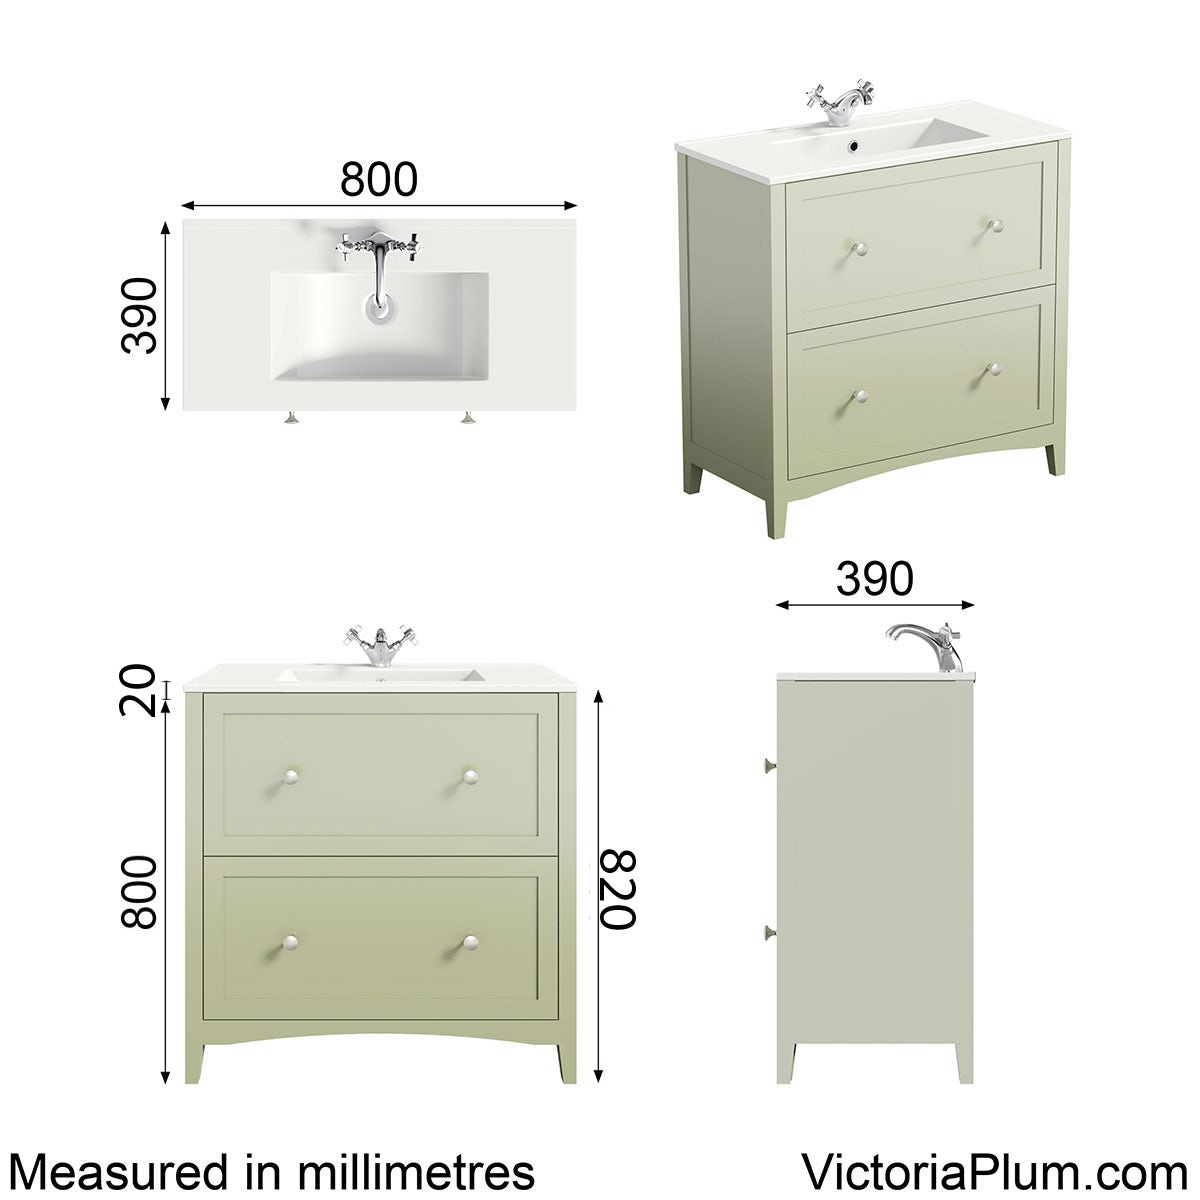 Dimensions for The Bath Co. Camberley sage vanity unit basin 800mm